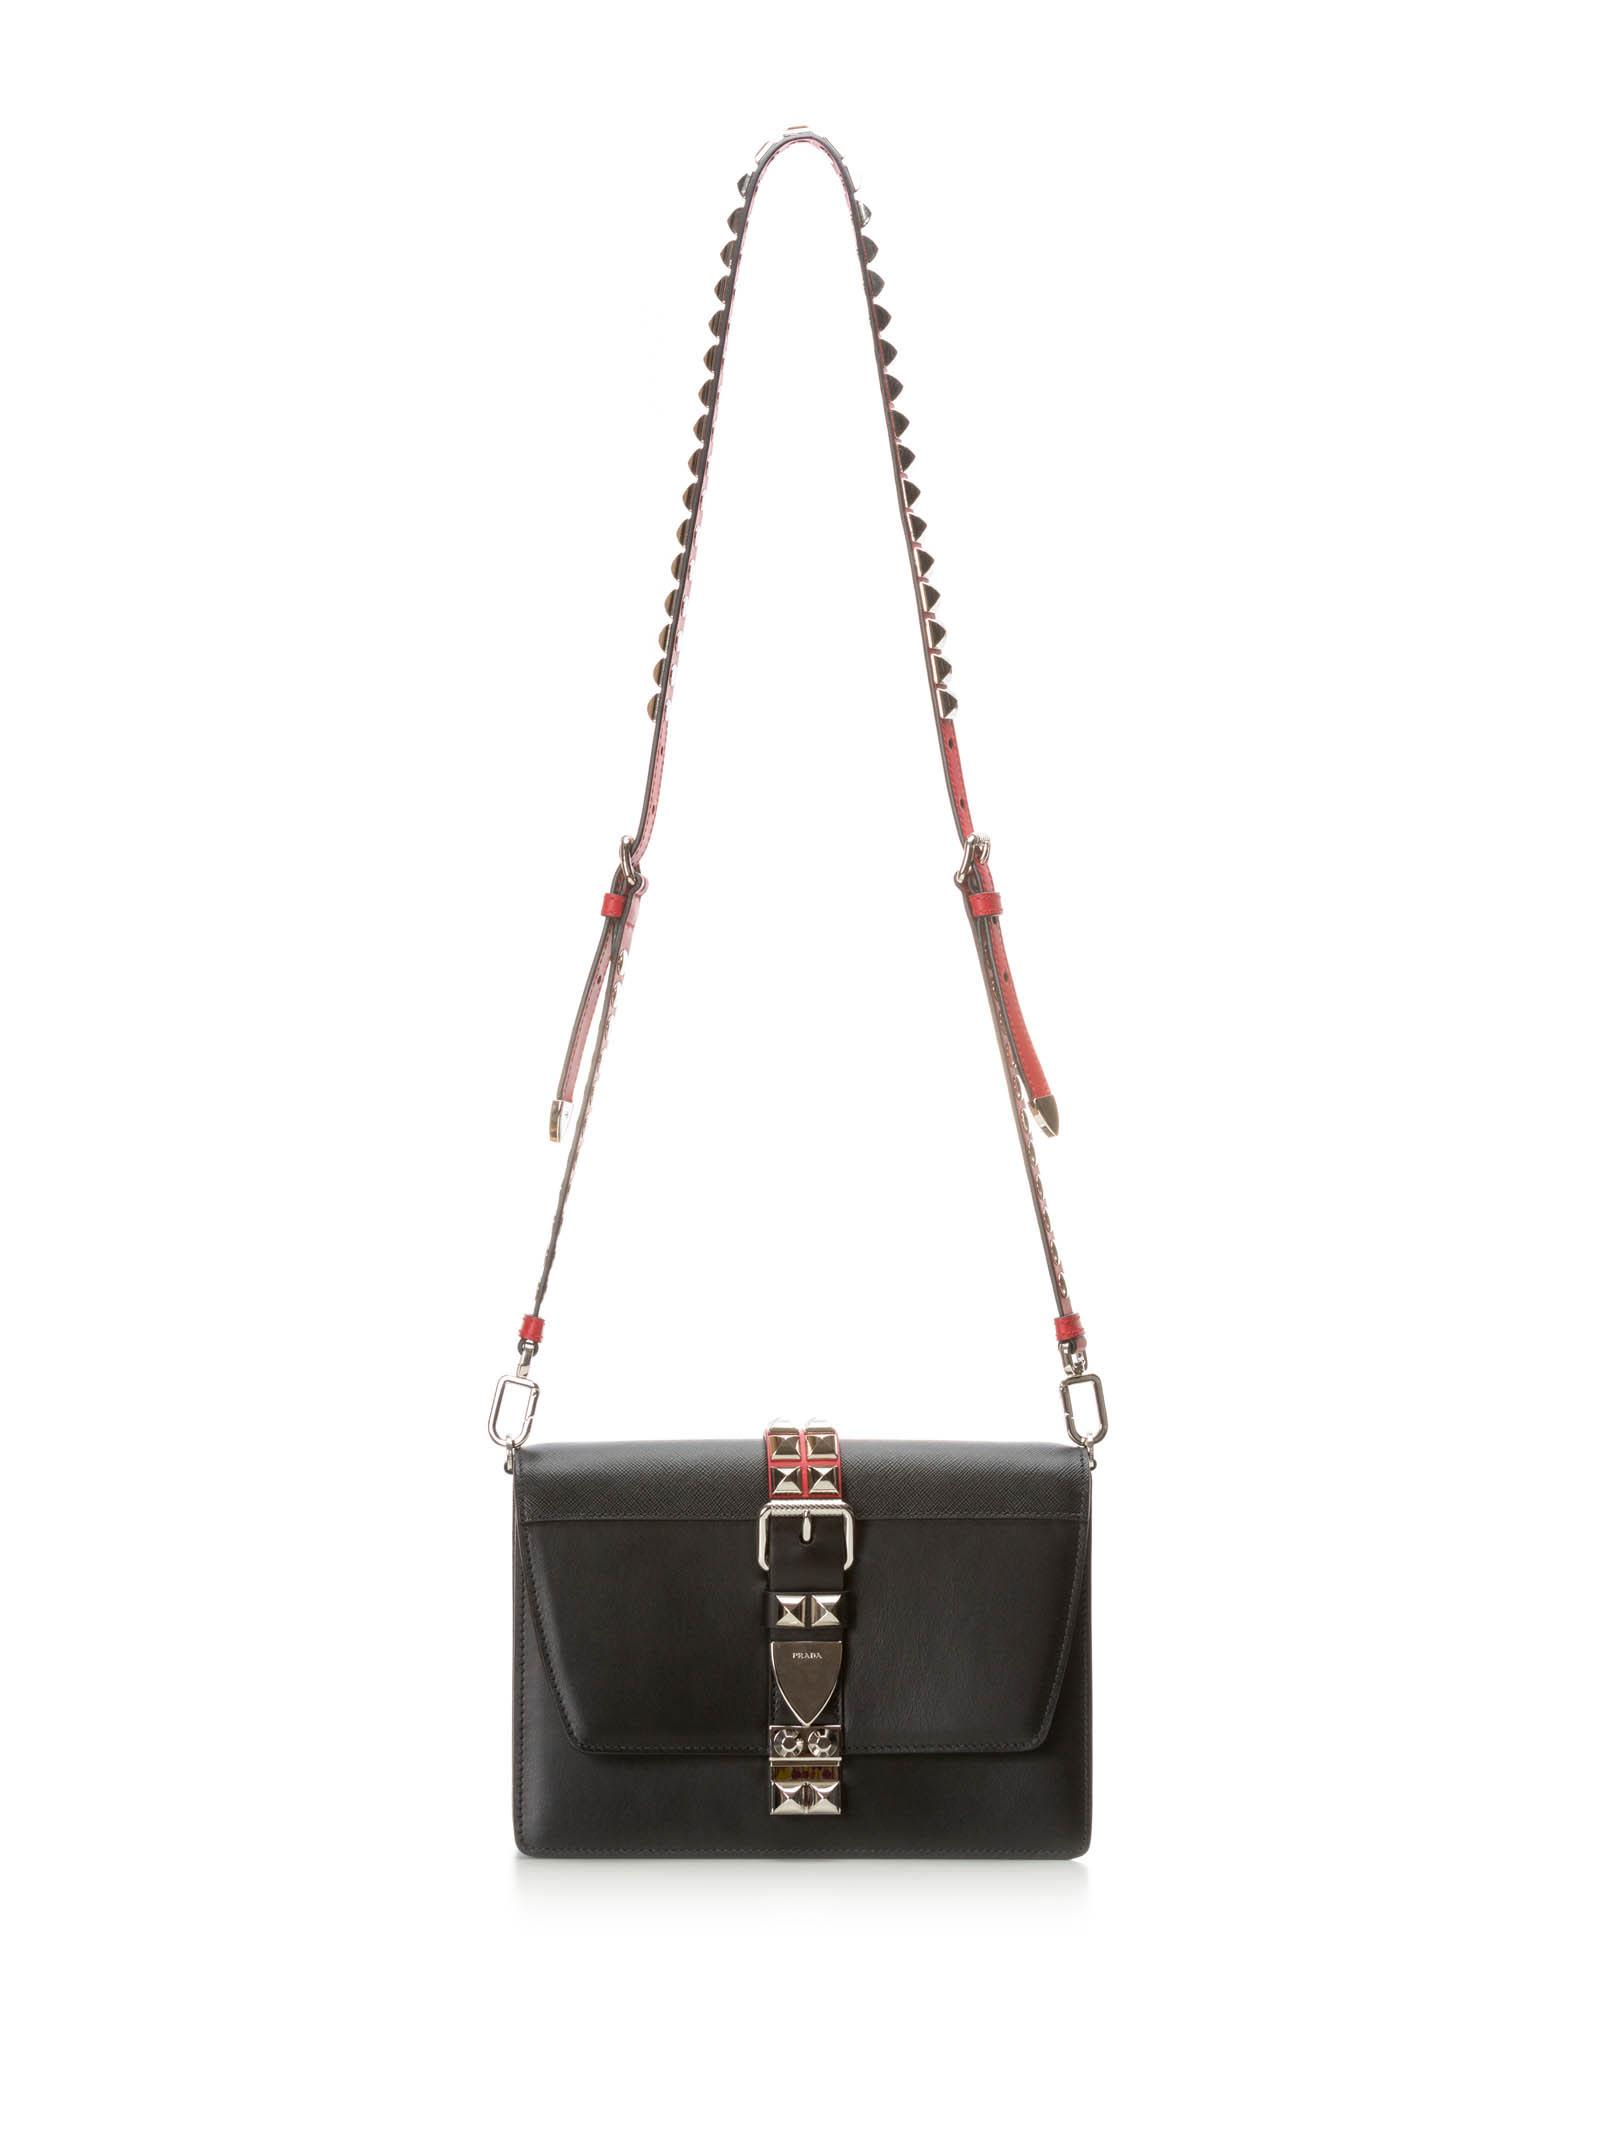 7c19a737f8f2 Prada Elektra Calf Leather Bag In Nero Fuoco | ModeSens